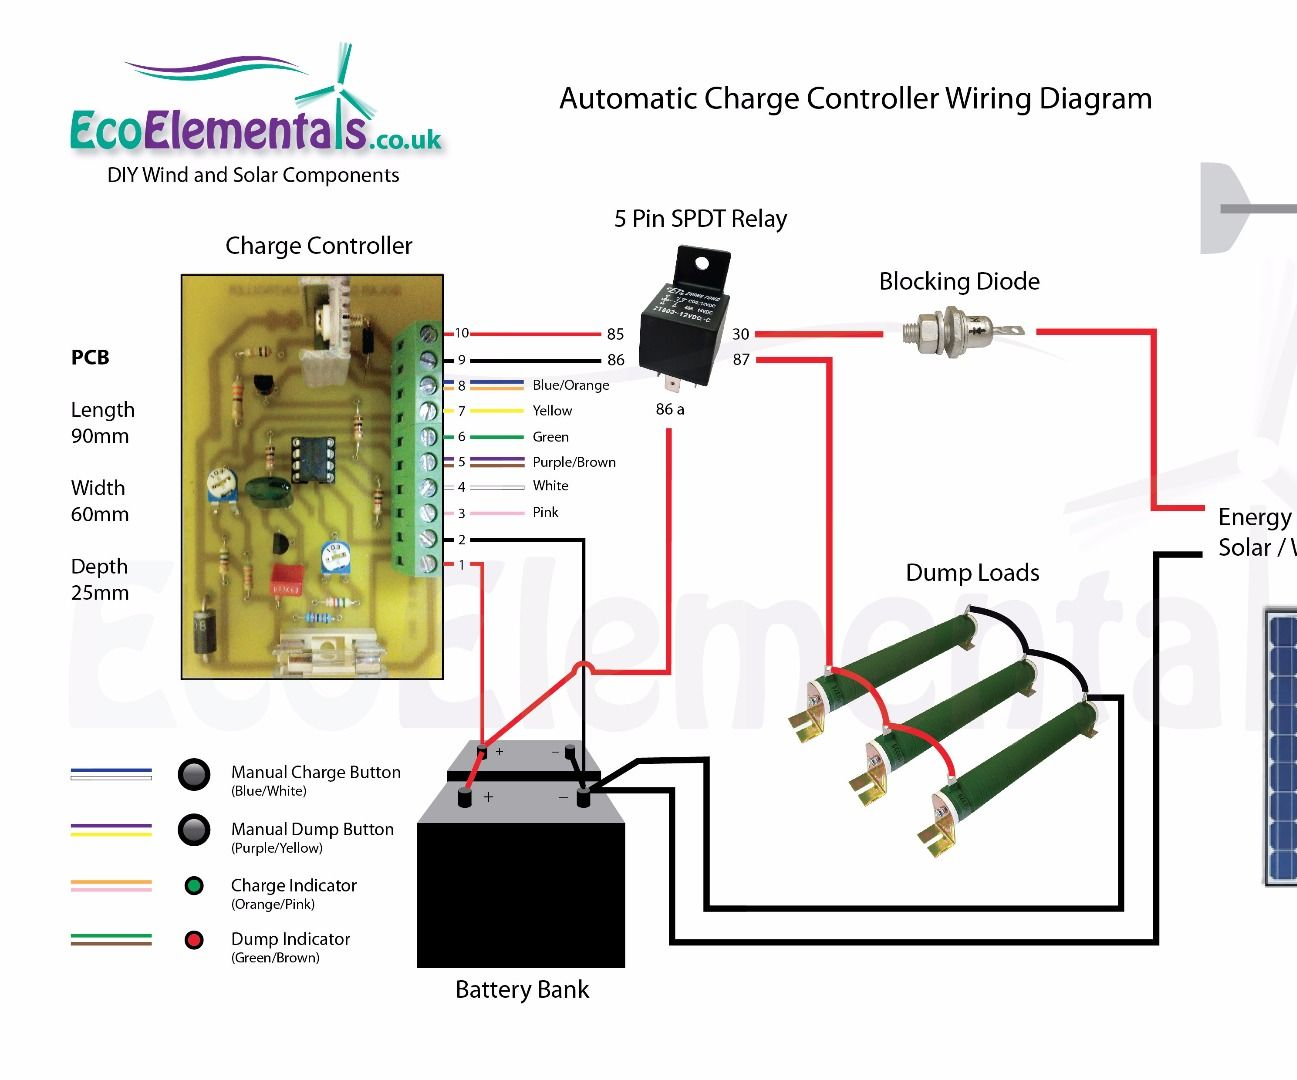 medium resolution of charge controller wiring diagram for diy wind turbine or solar panels wind turbine wiring diagram wind turbine wiring diagram